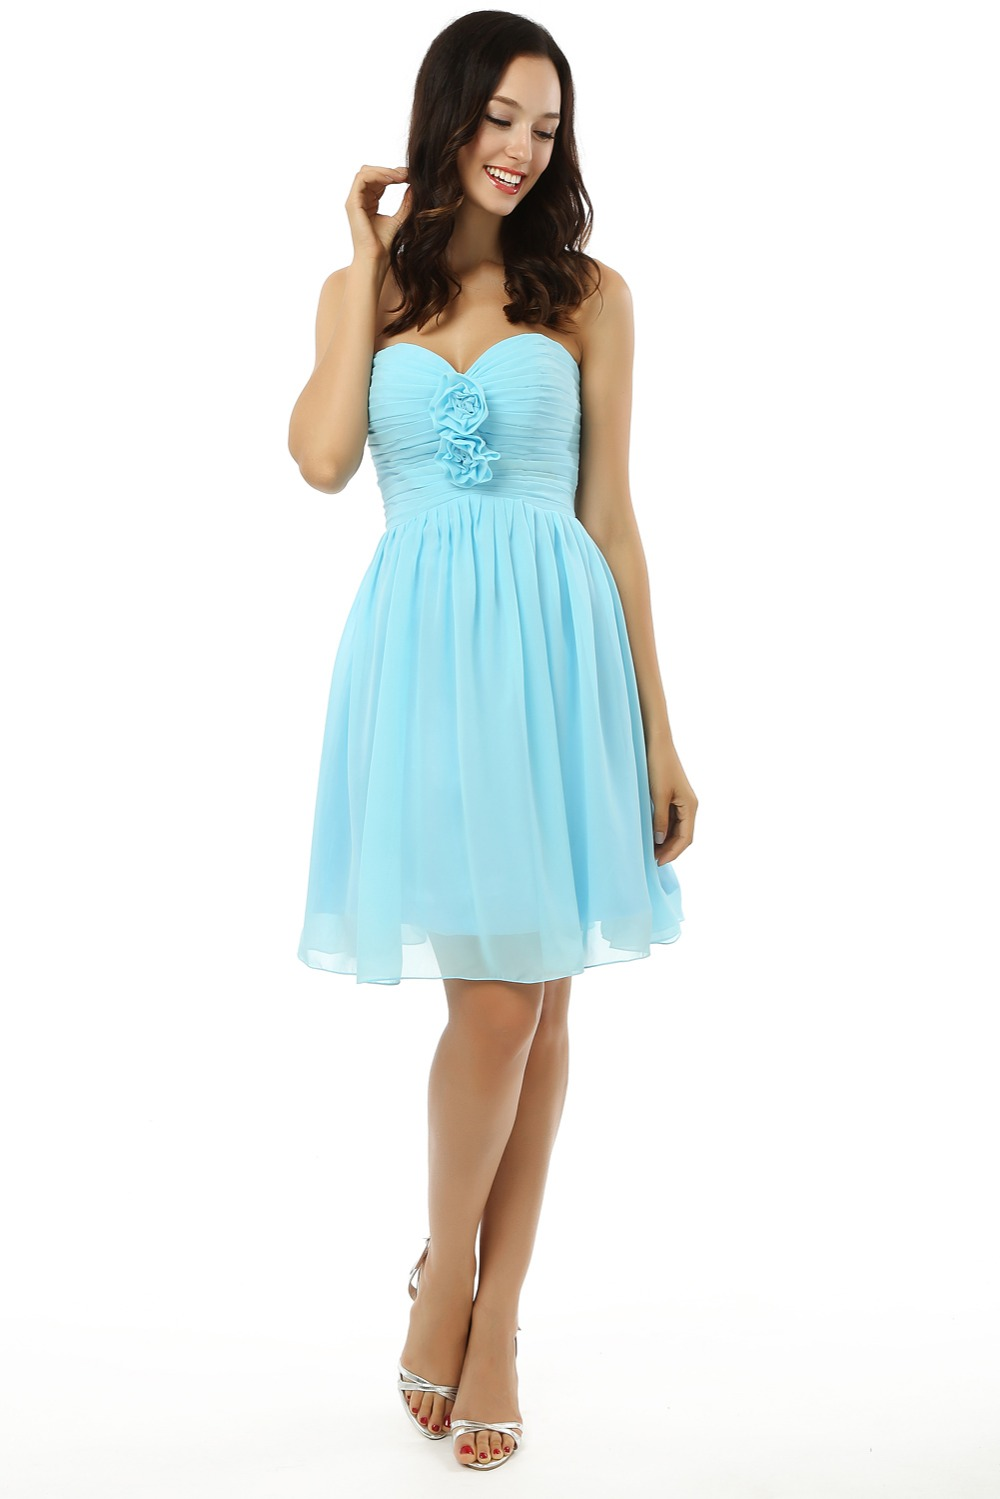 Aliexpress buy backless 2018 cheap bridesmaid dresses under aliexpress buy backless 2018 cheap bridesmaid dresses under 50 a line sweetheart short mini chiffon turquoise flowers wedding party dresses from ombrellifo Images